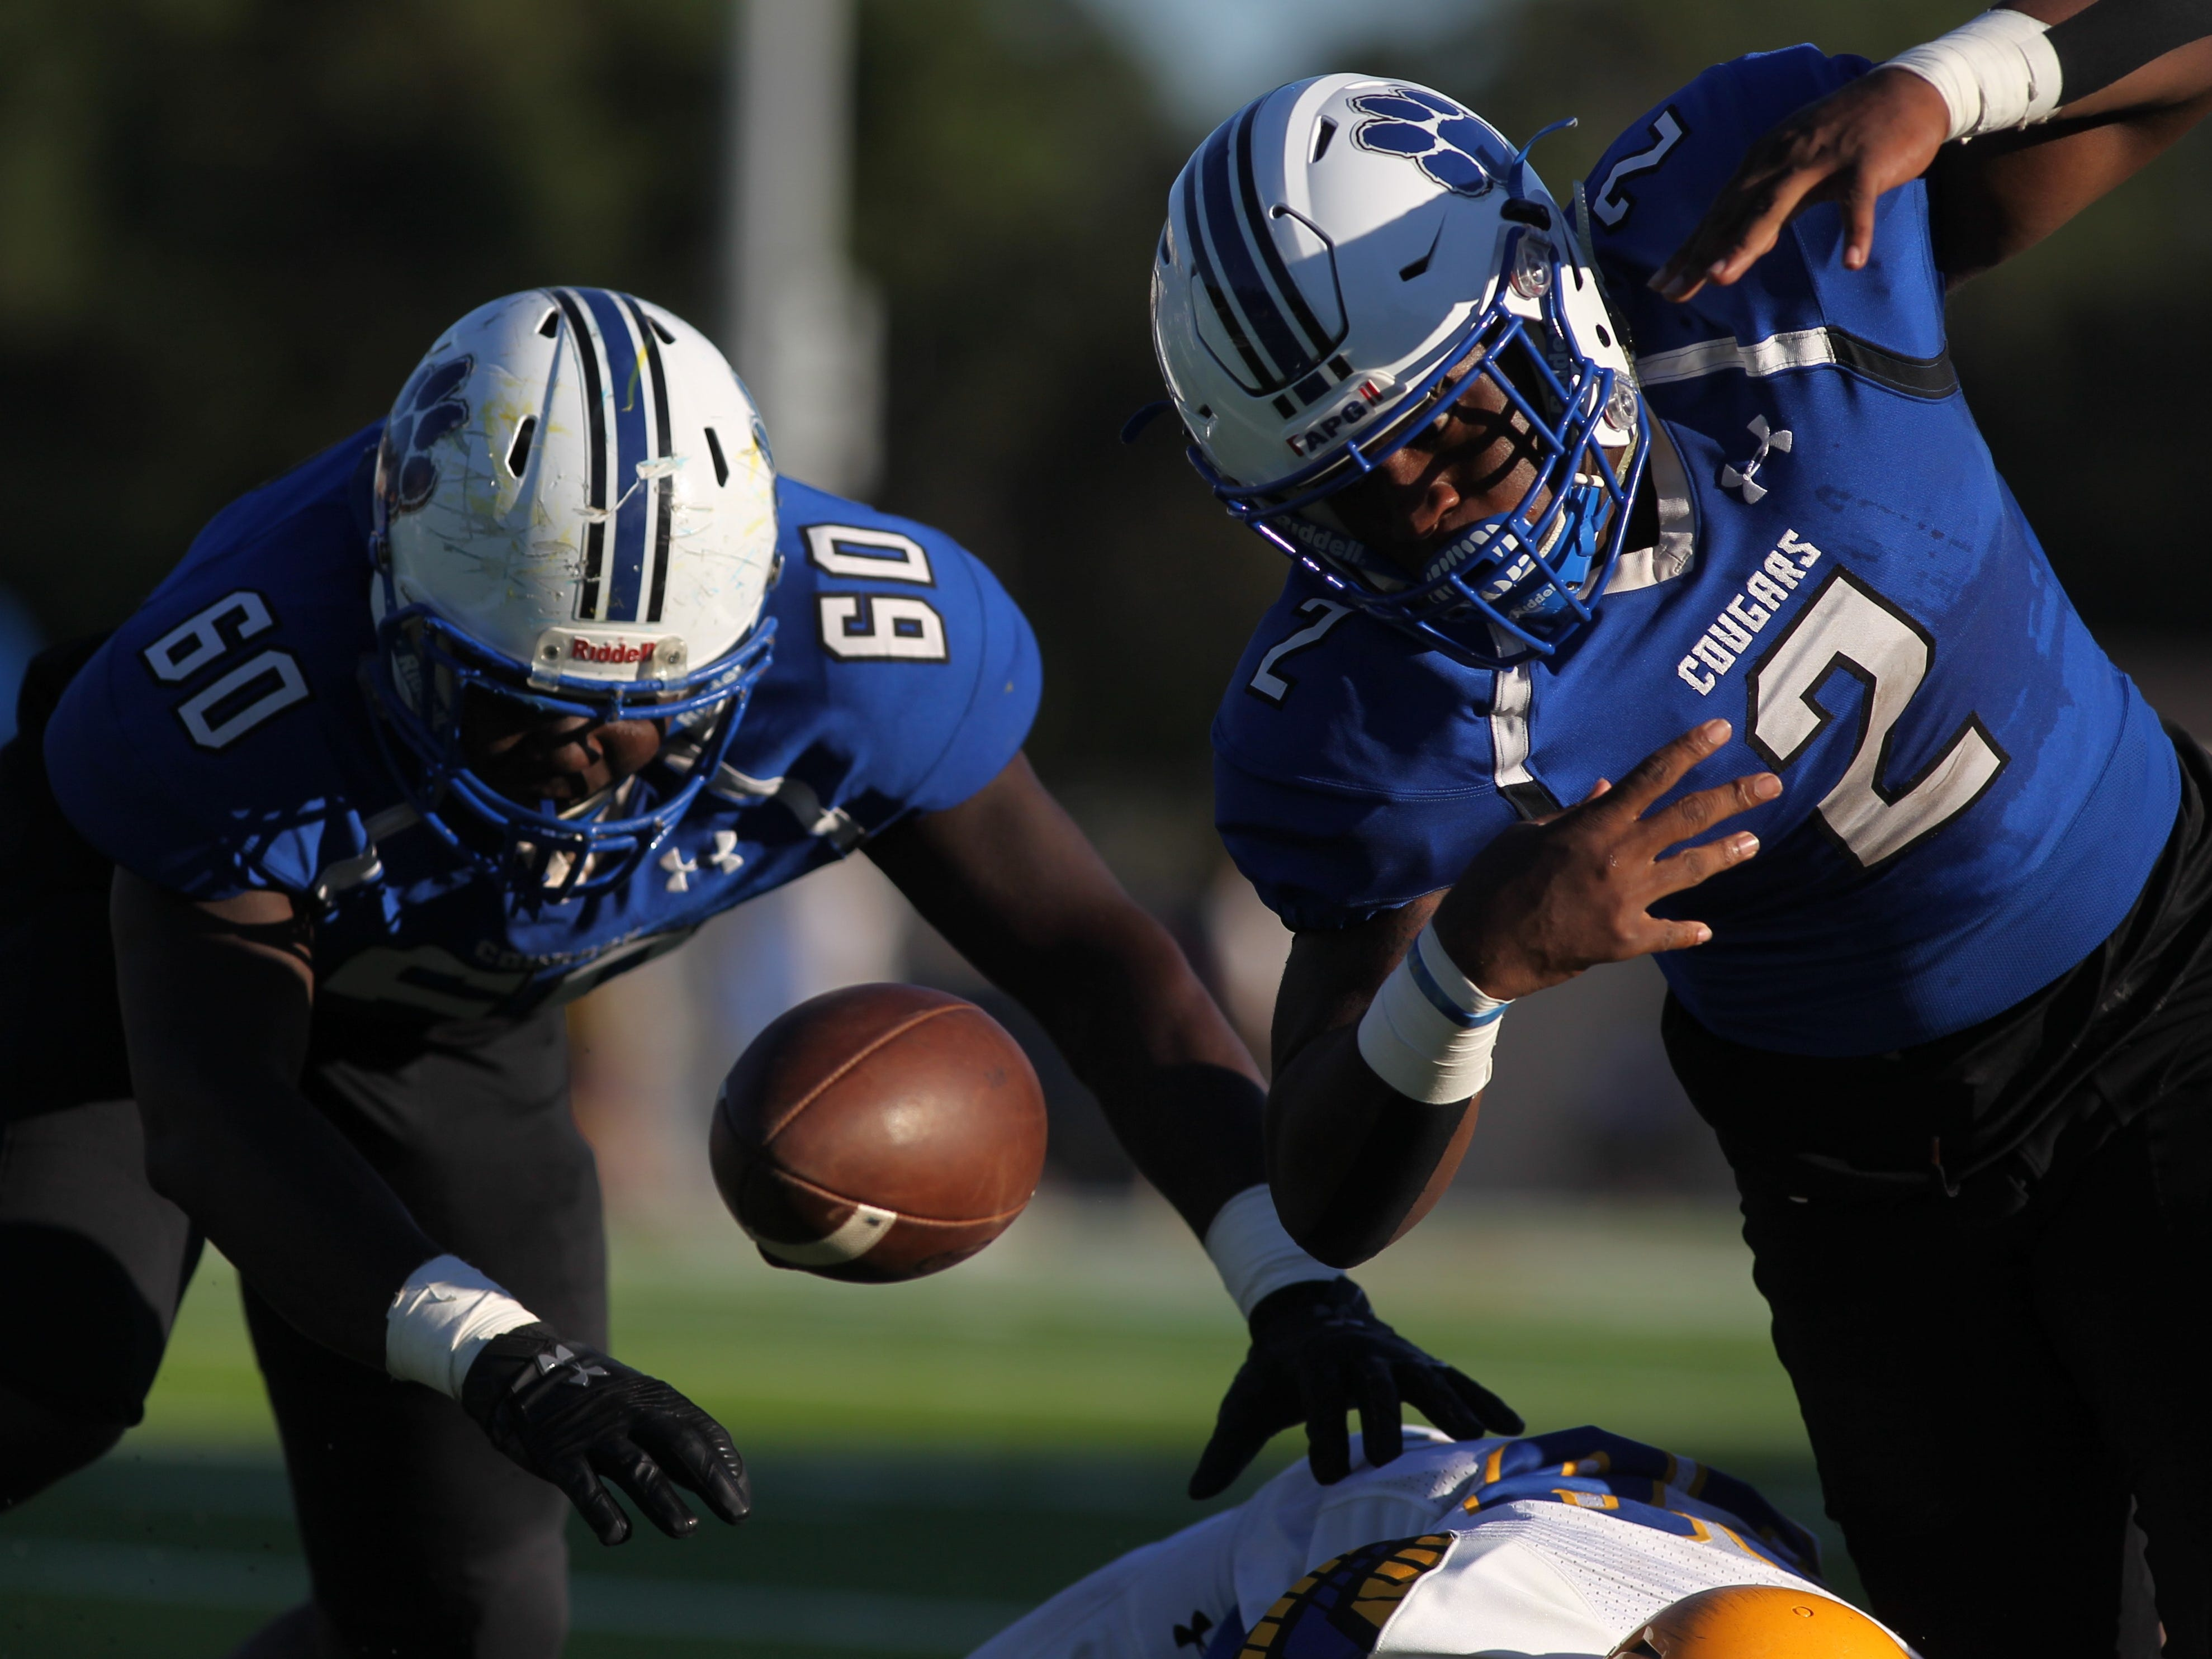 Godby running back Tony Street runs upfield but is hit and fumbles during Saturday's game against Rickards.